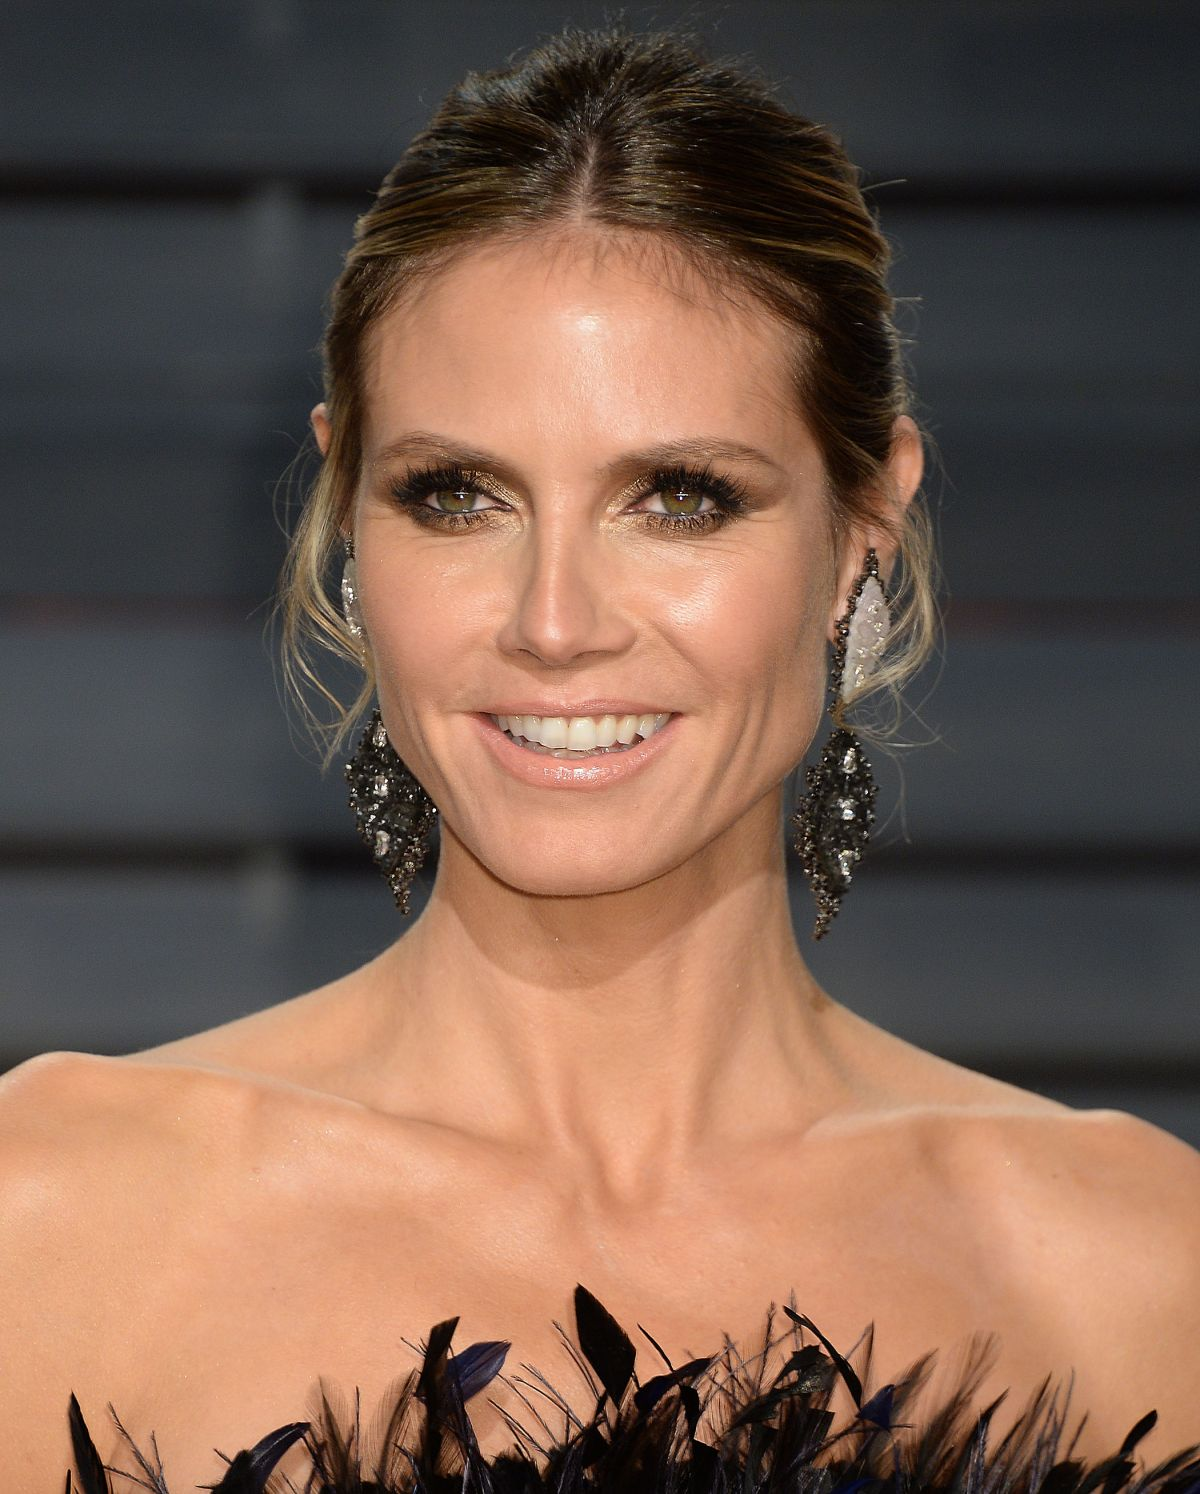 heidi klum at 2017 vanity fair oscar party in beverly hills 02 26 2017 celebs by lianxio. Black Bedroom Furniture Sets. Home Design Ideas